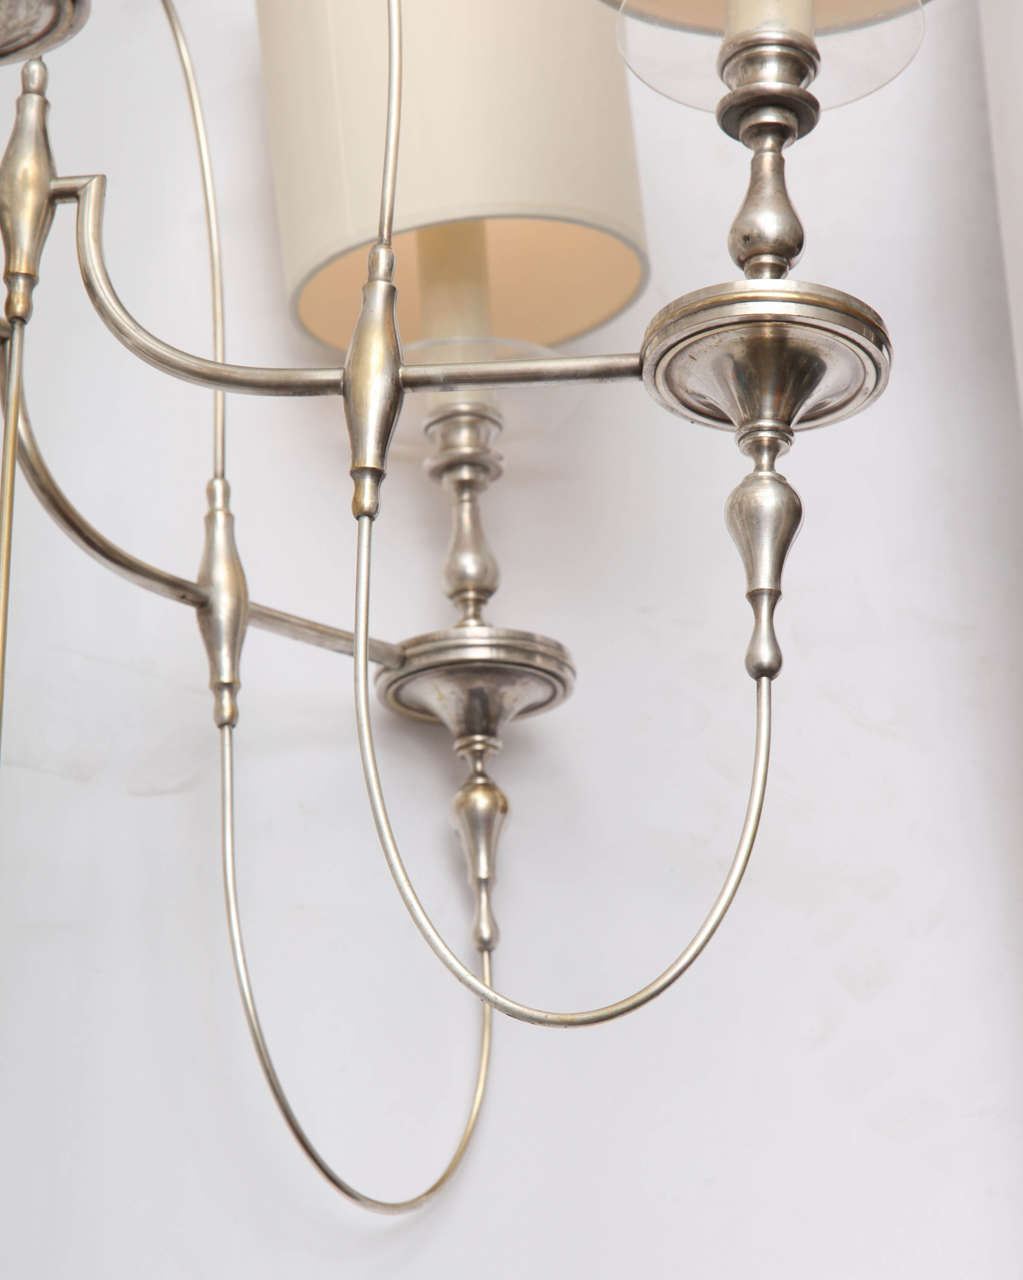 Mid-Century Modern 1940s Art Moderne Silver Candelabra Ceiling Fixture For Sale